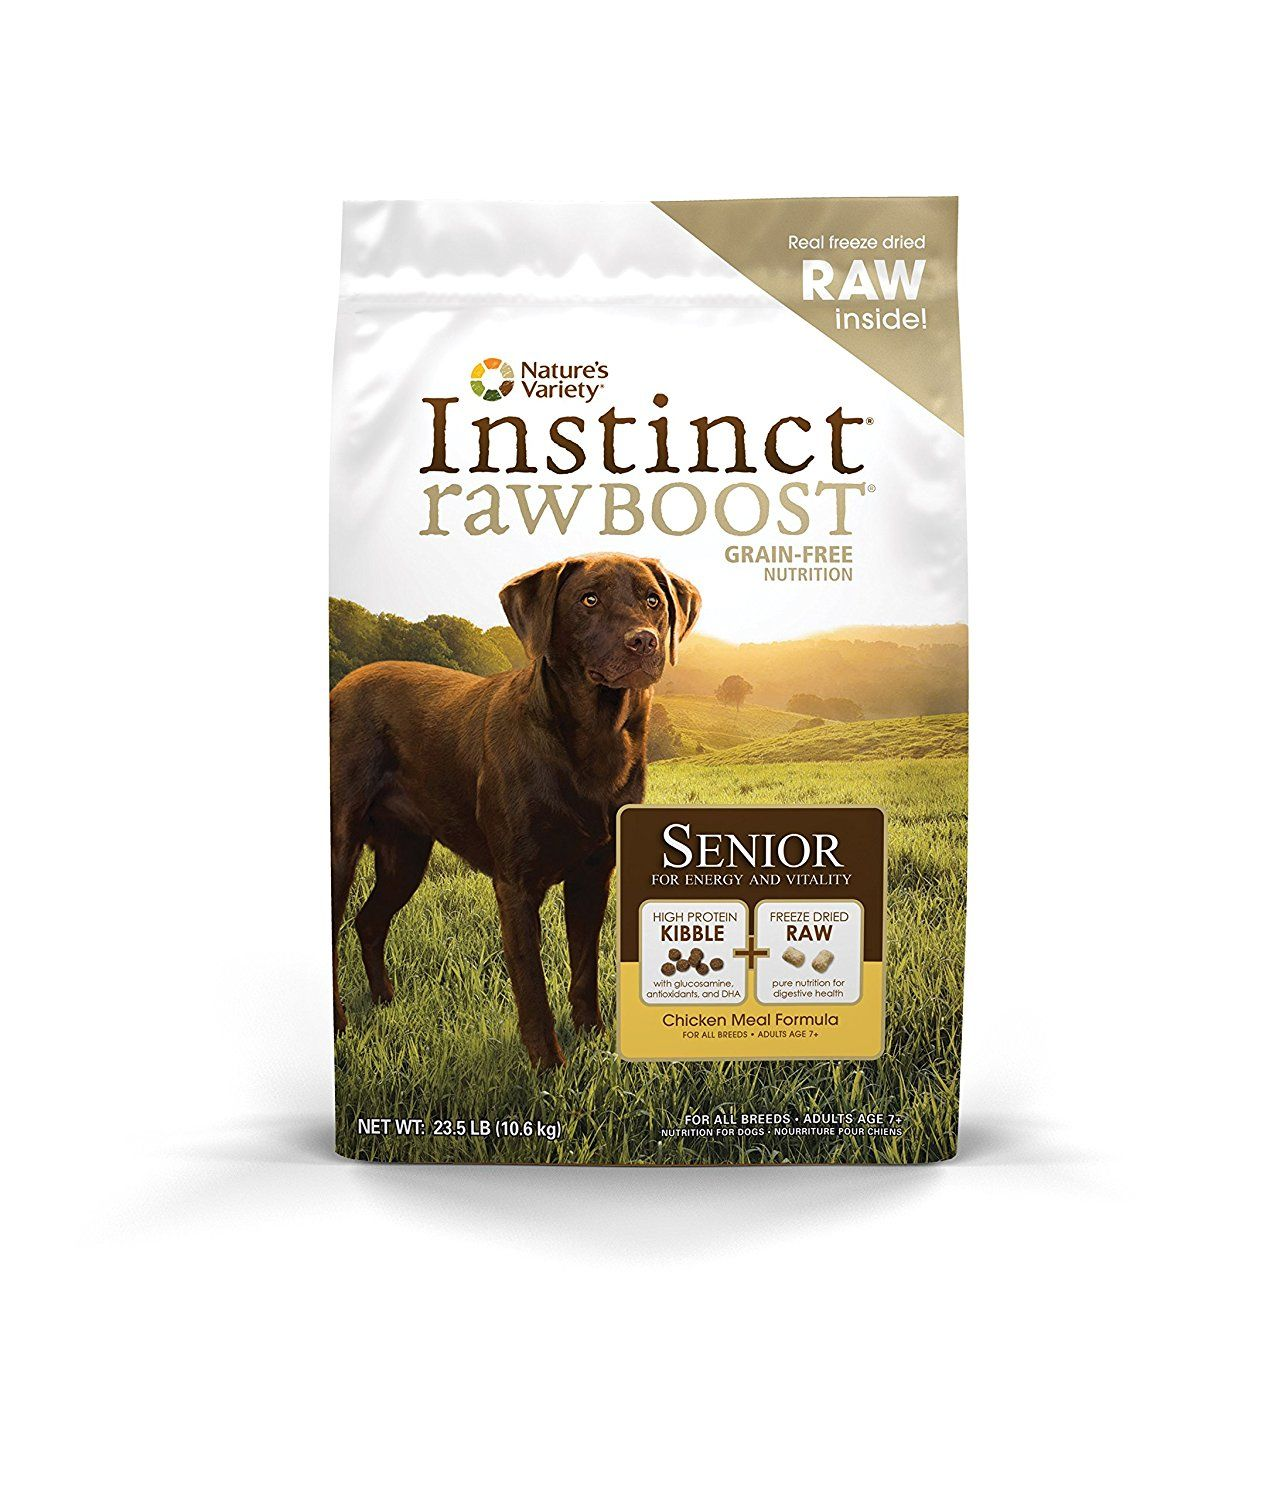 Nature's Variety Instinct Raw Boost Senior Grain Free